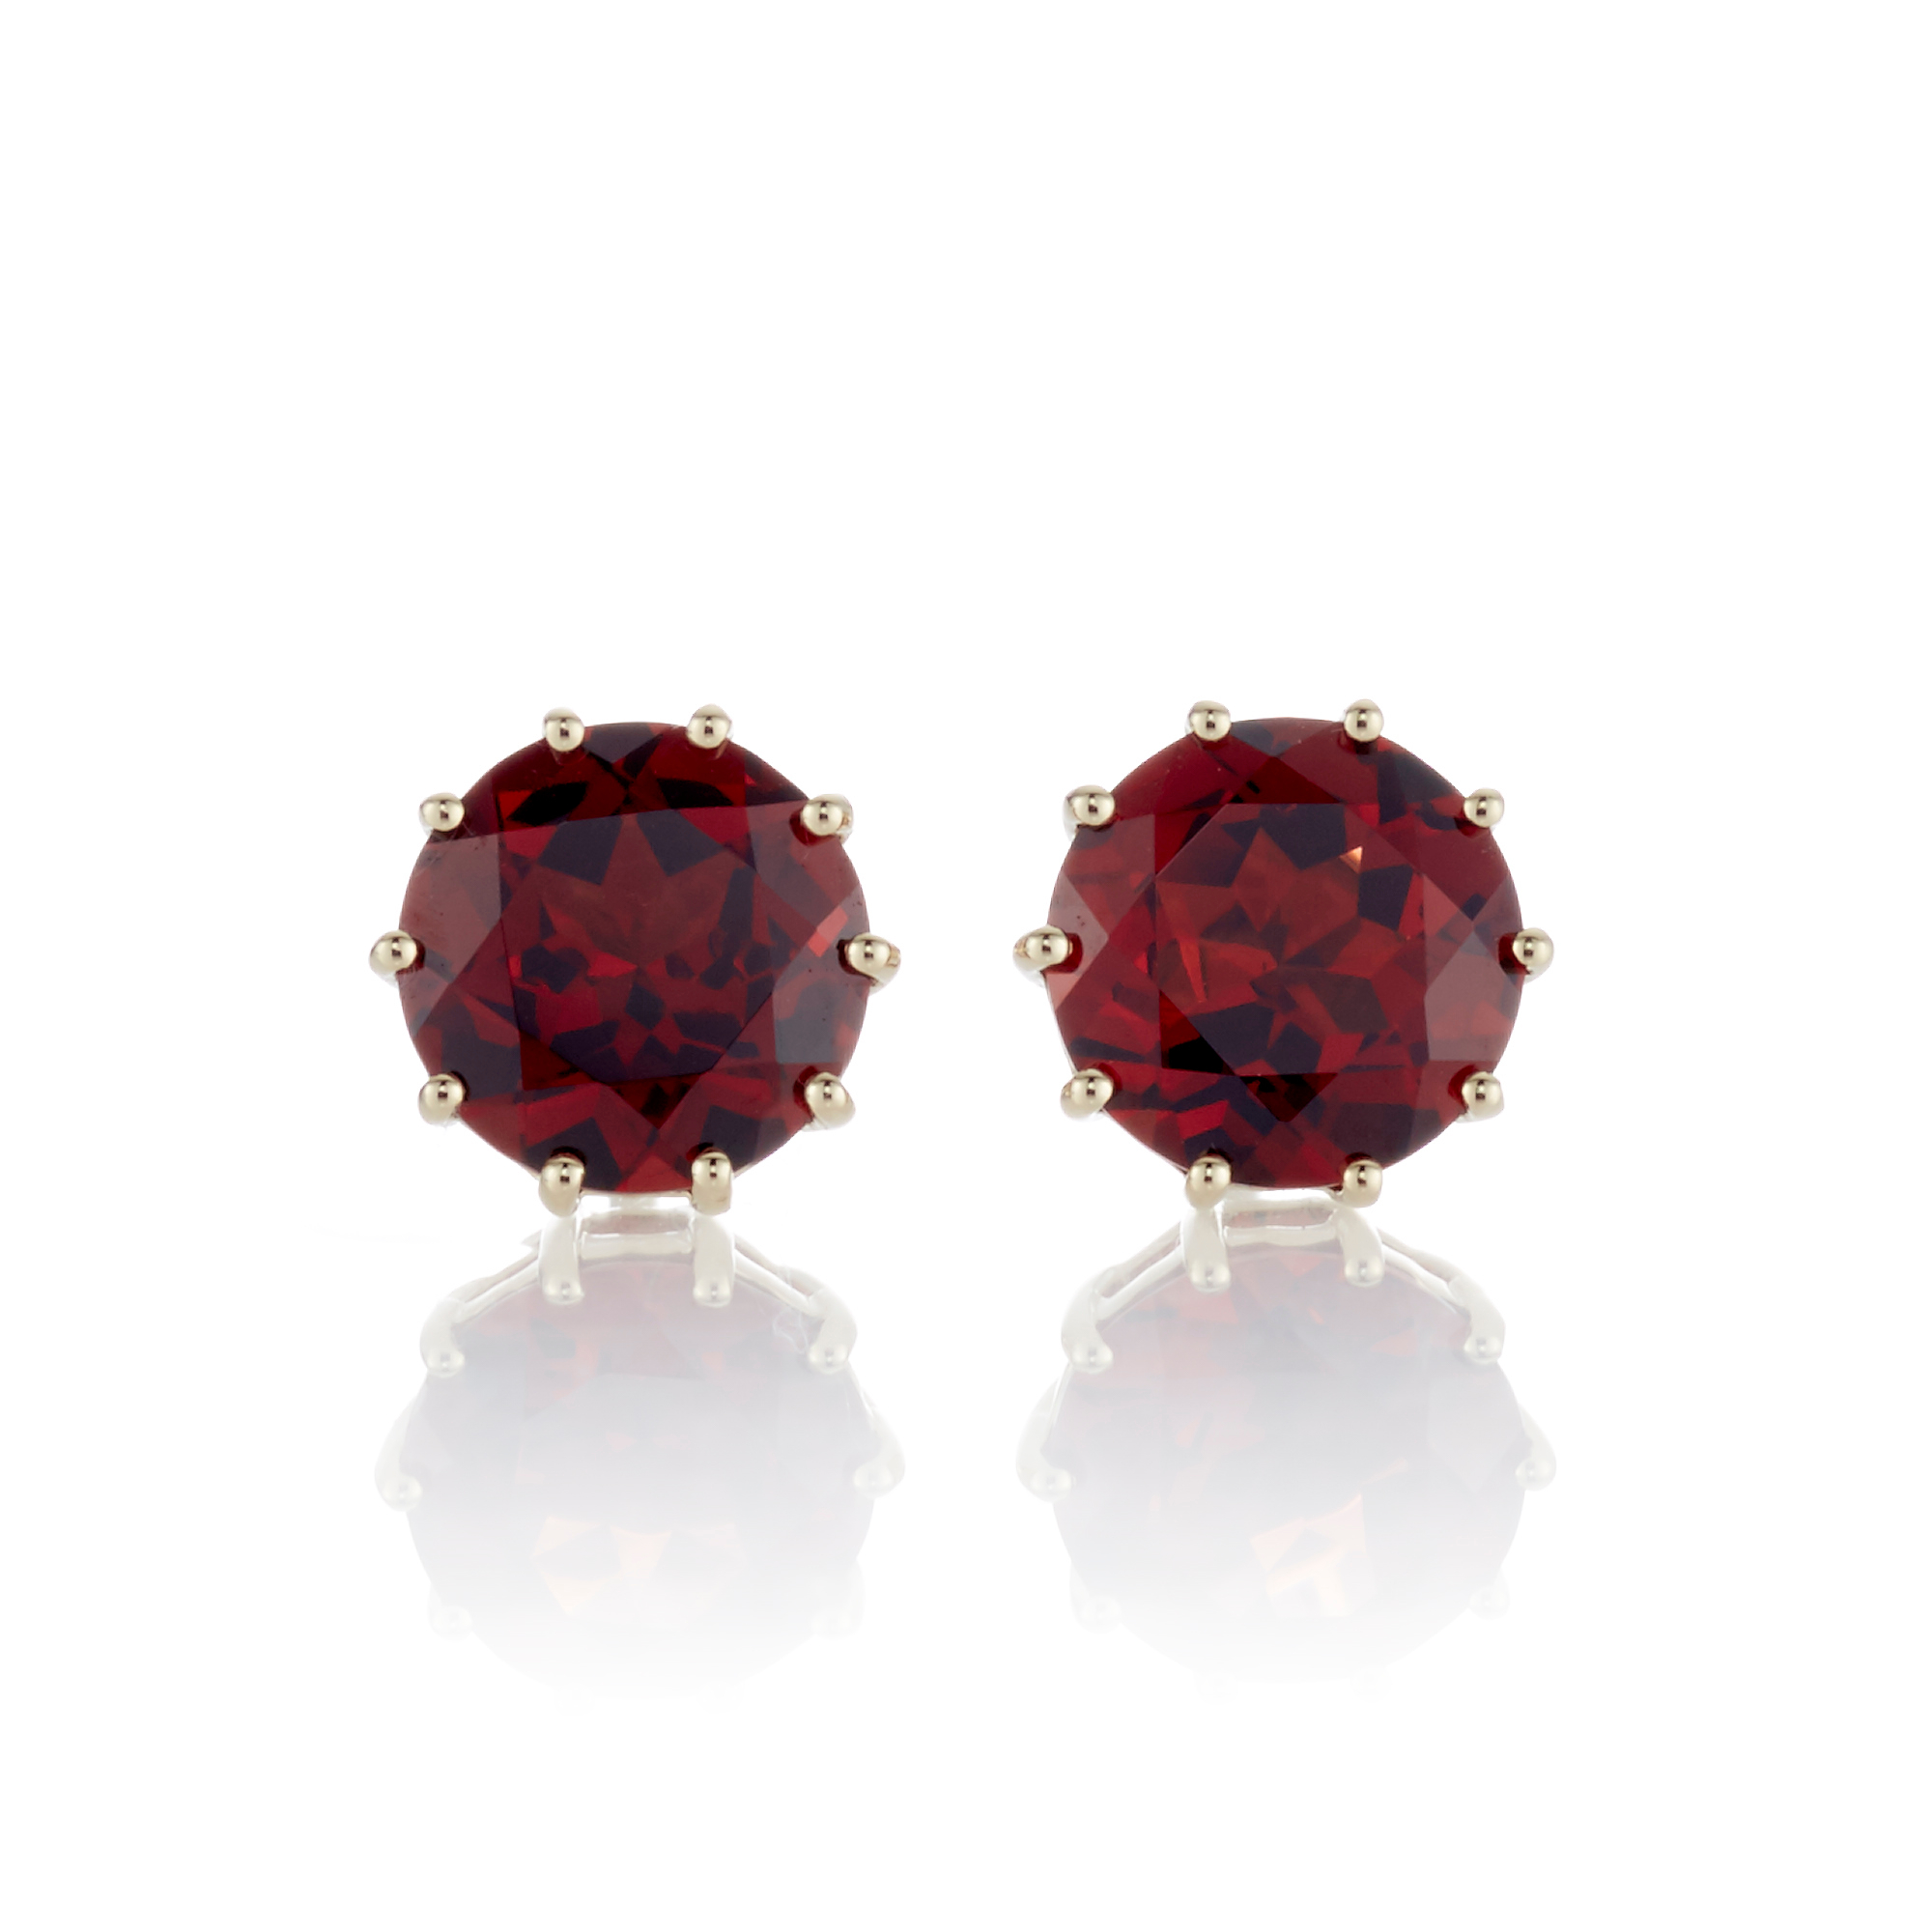 Gump's Faceted Garnet Earrings